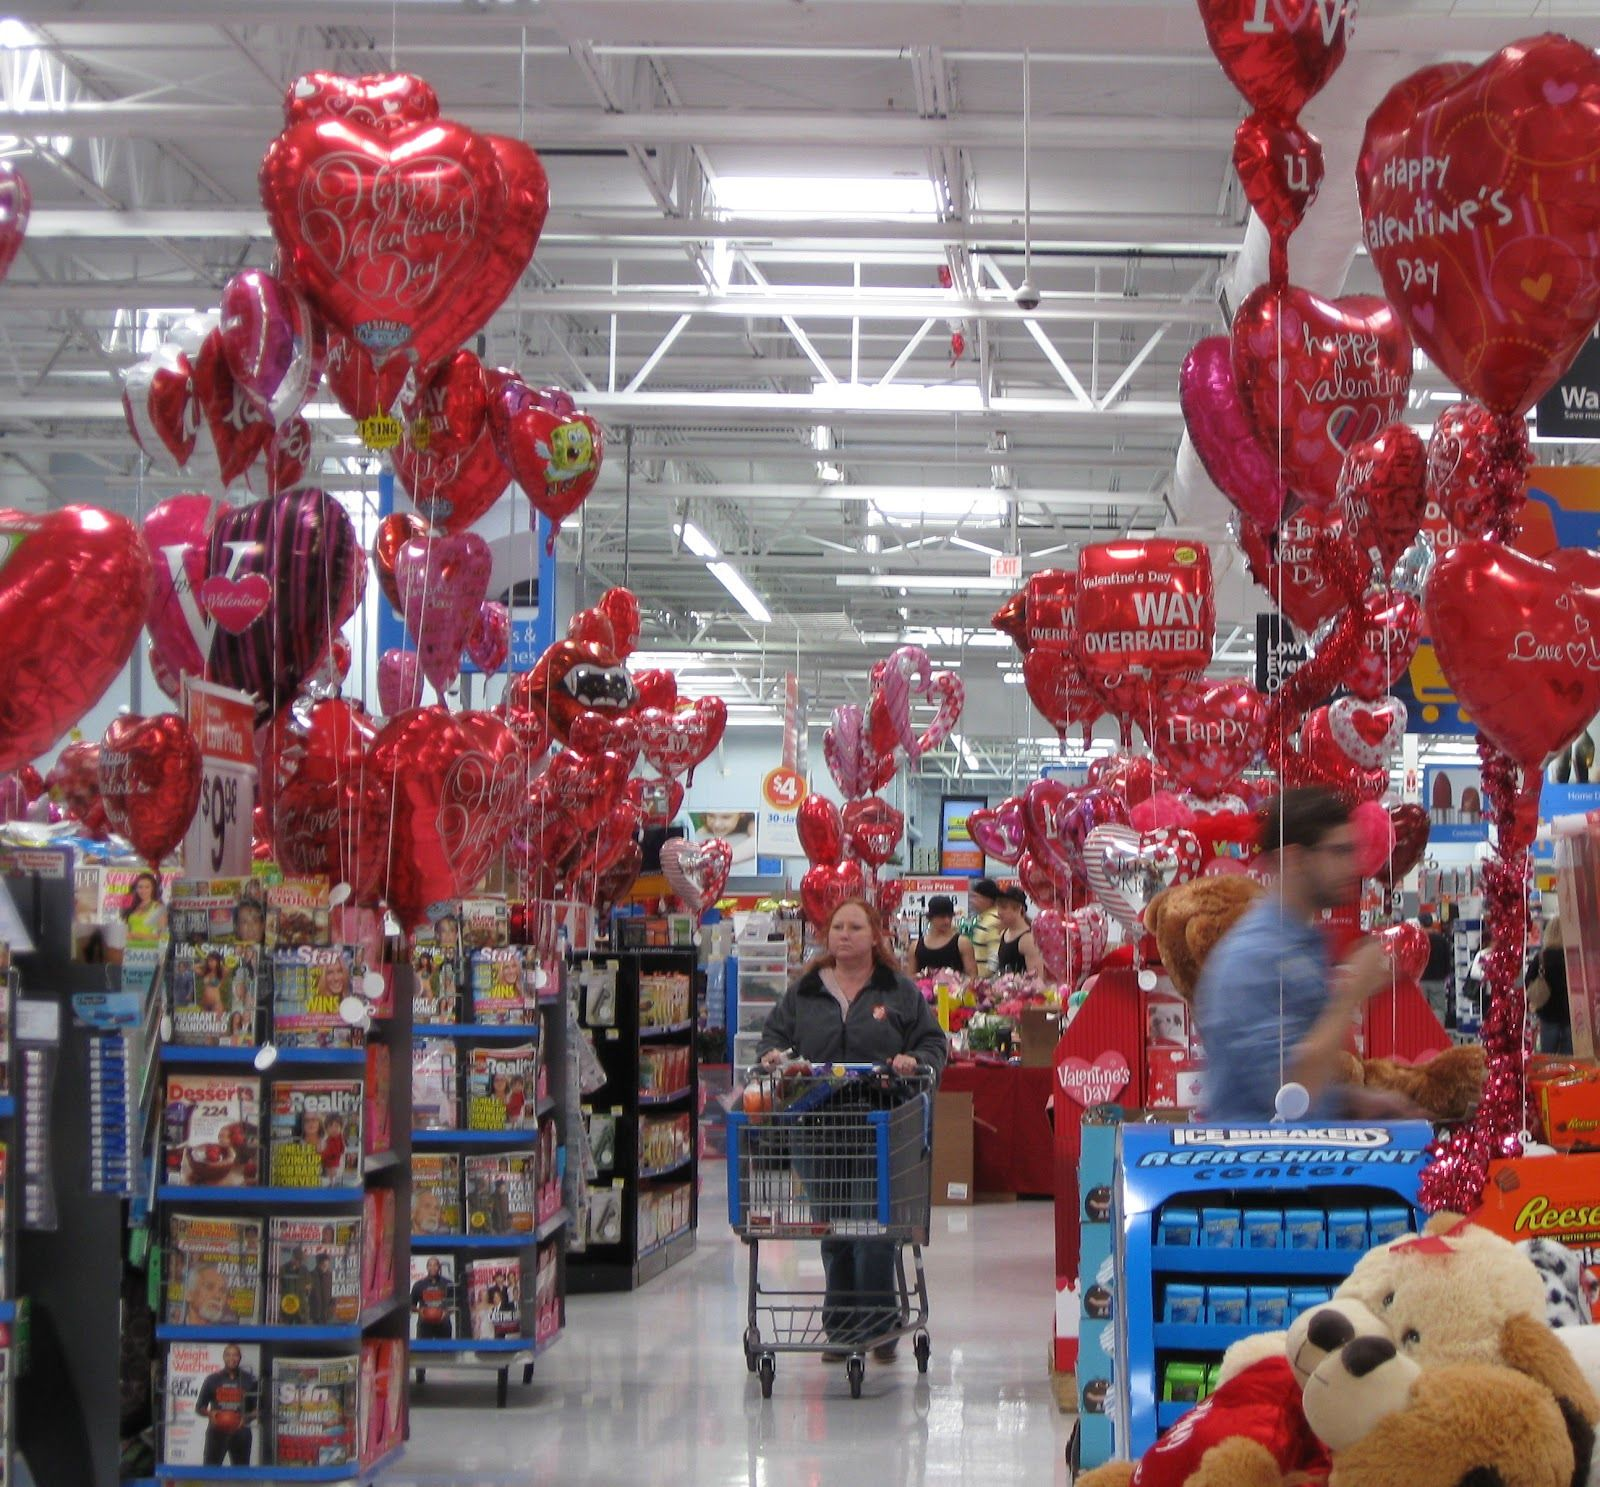 Valentines Bears Walmart. Walmart Dressed For Valentines Day